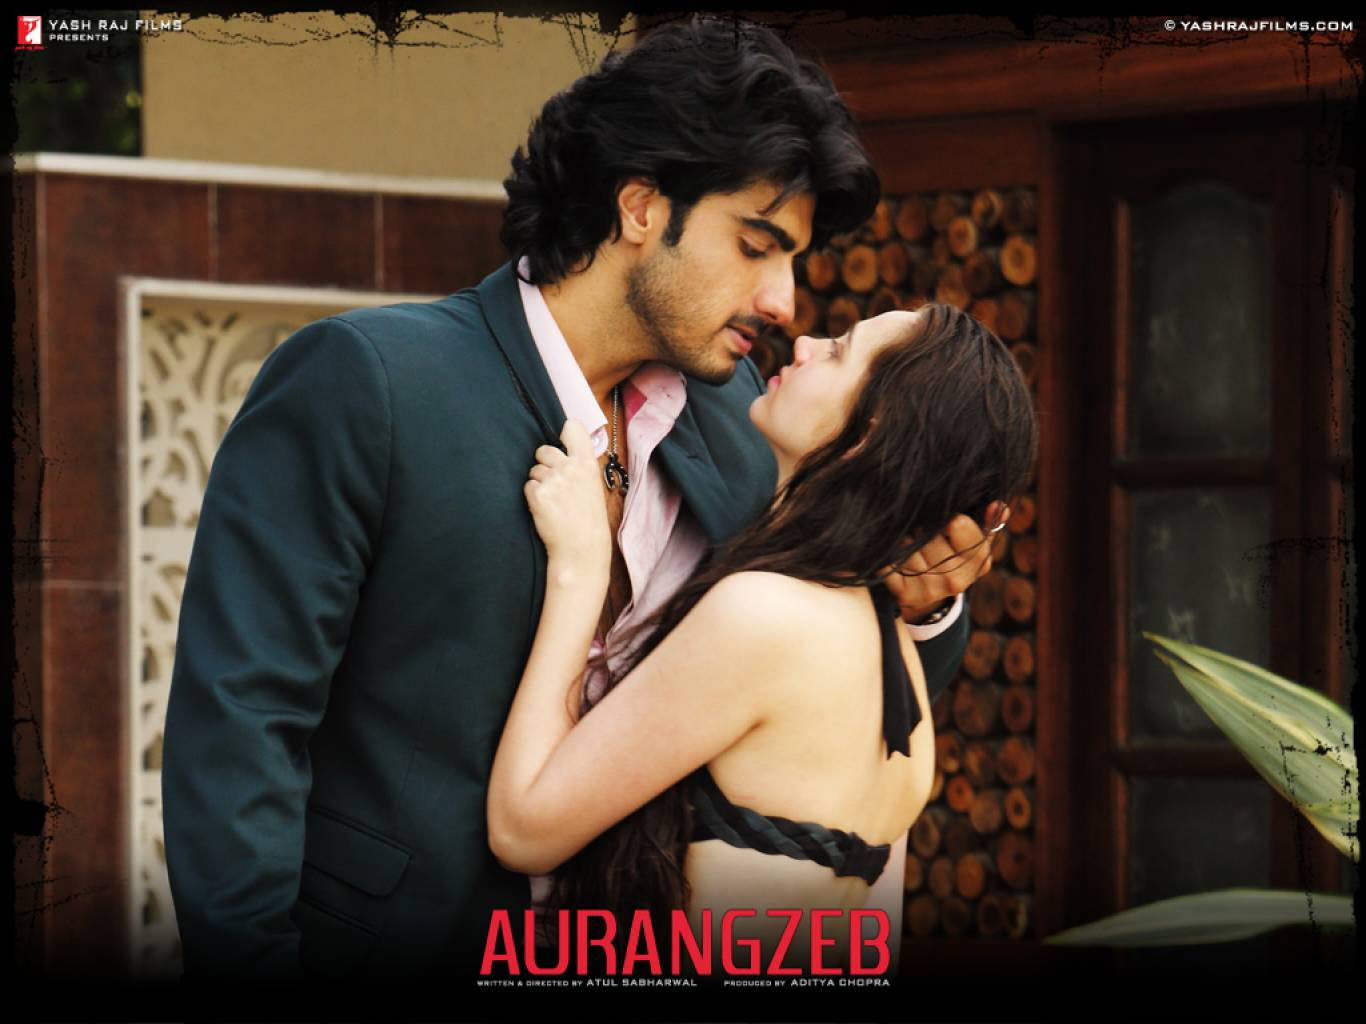 Aurangzeb Wallpapers